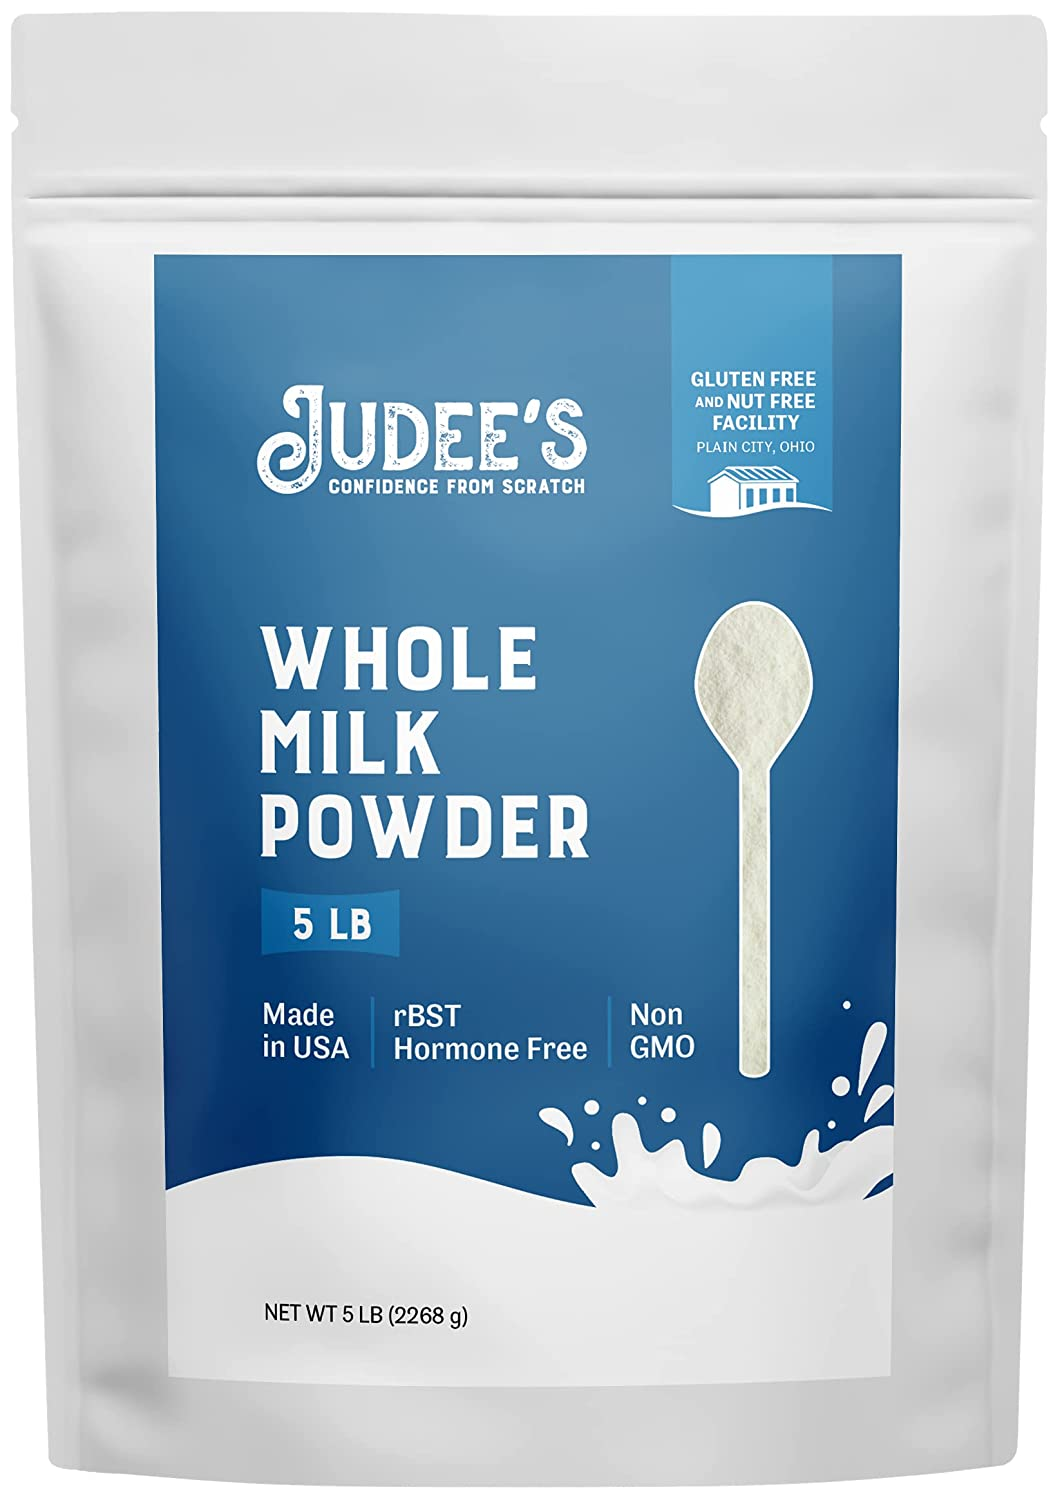 Judee's Whole Milk Powder 5lb 100% New popularity Hormone- Quality inspection Non-GMO rBST -